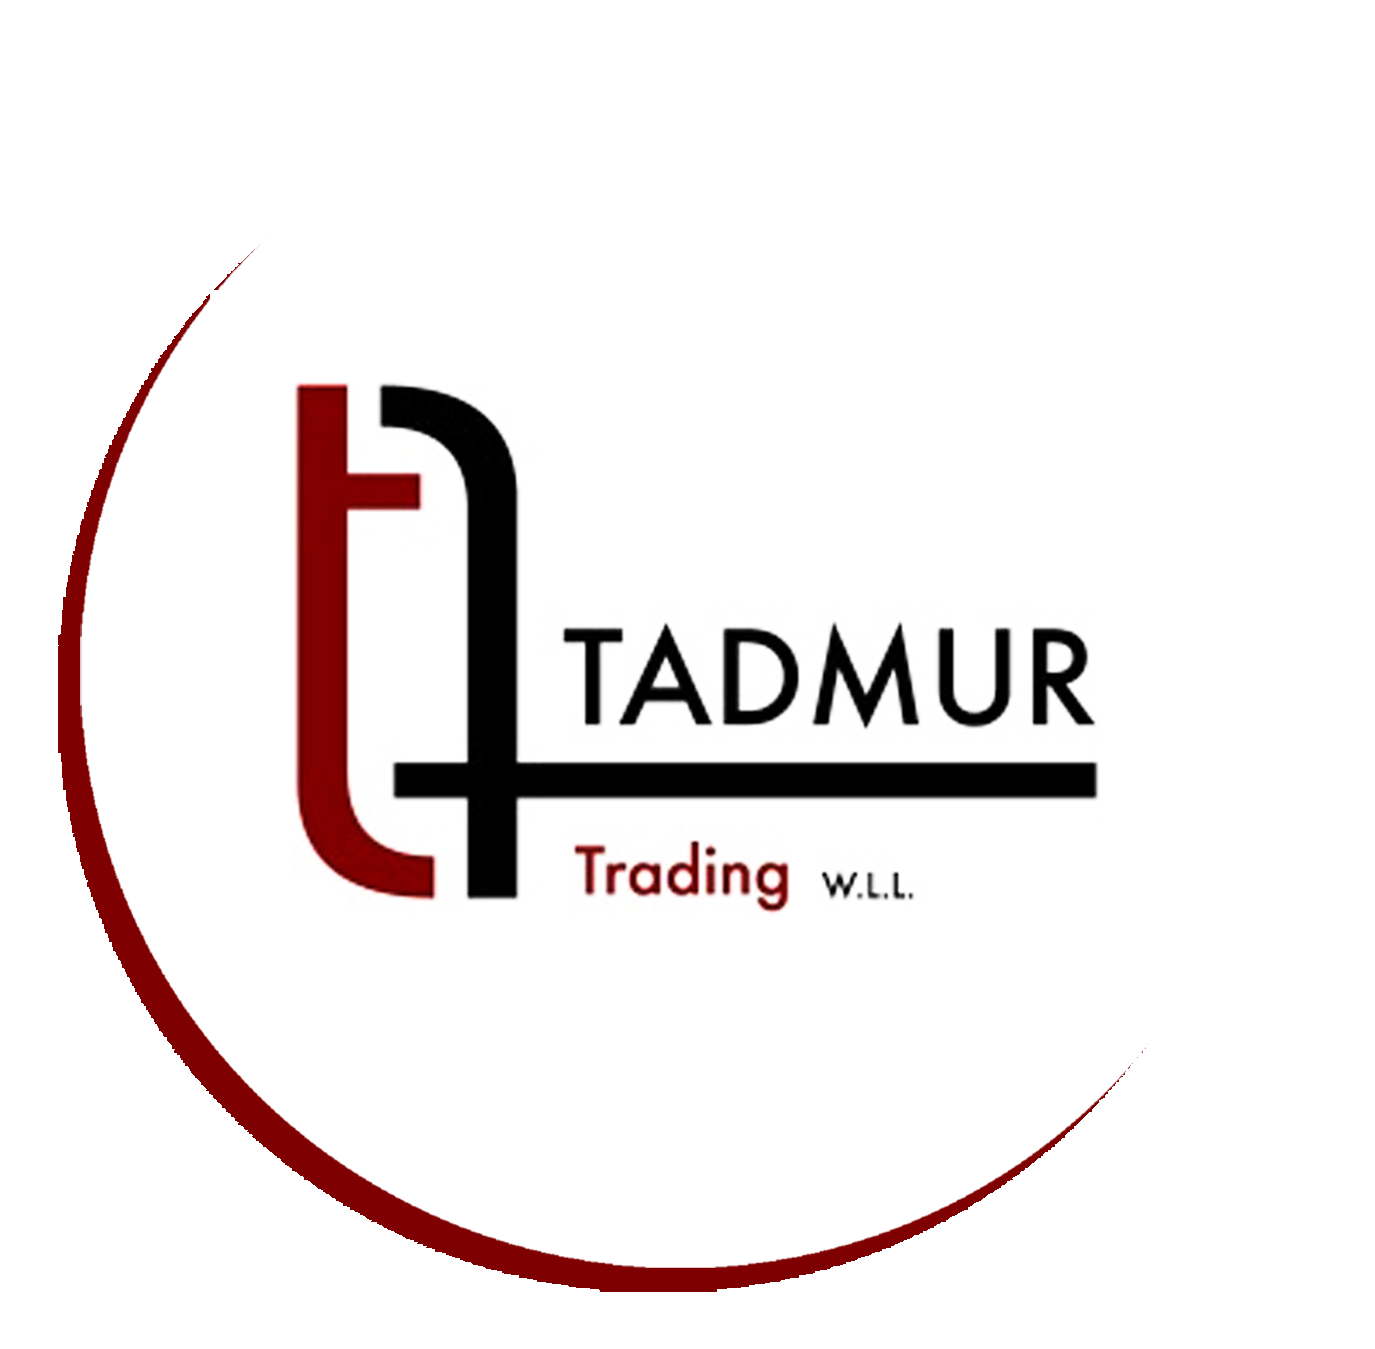 Tadmur Contracting & Trading